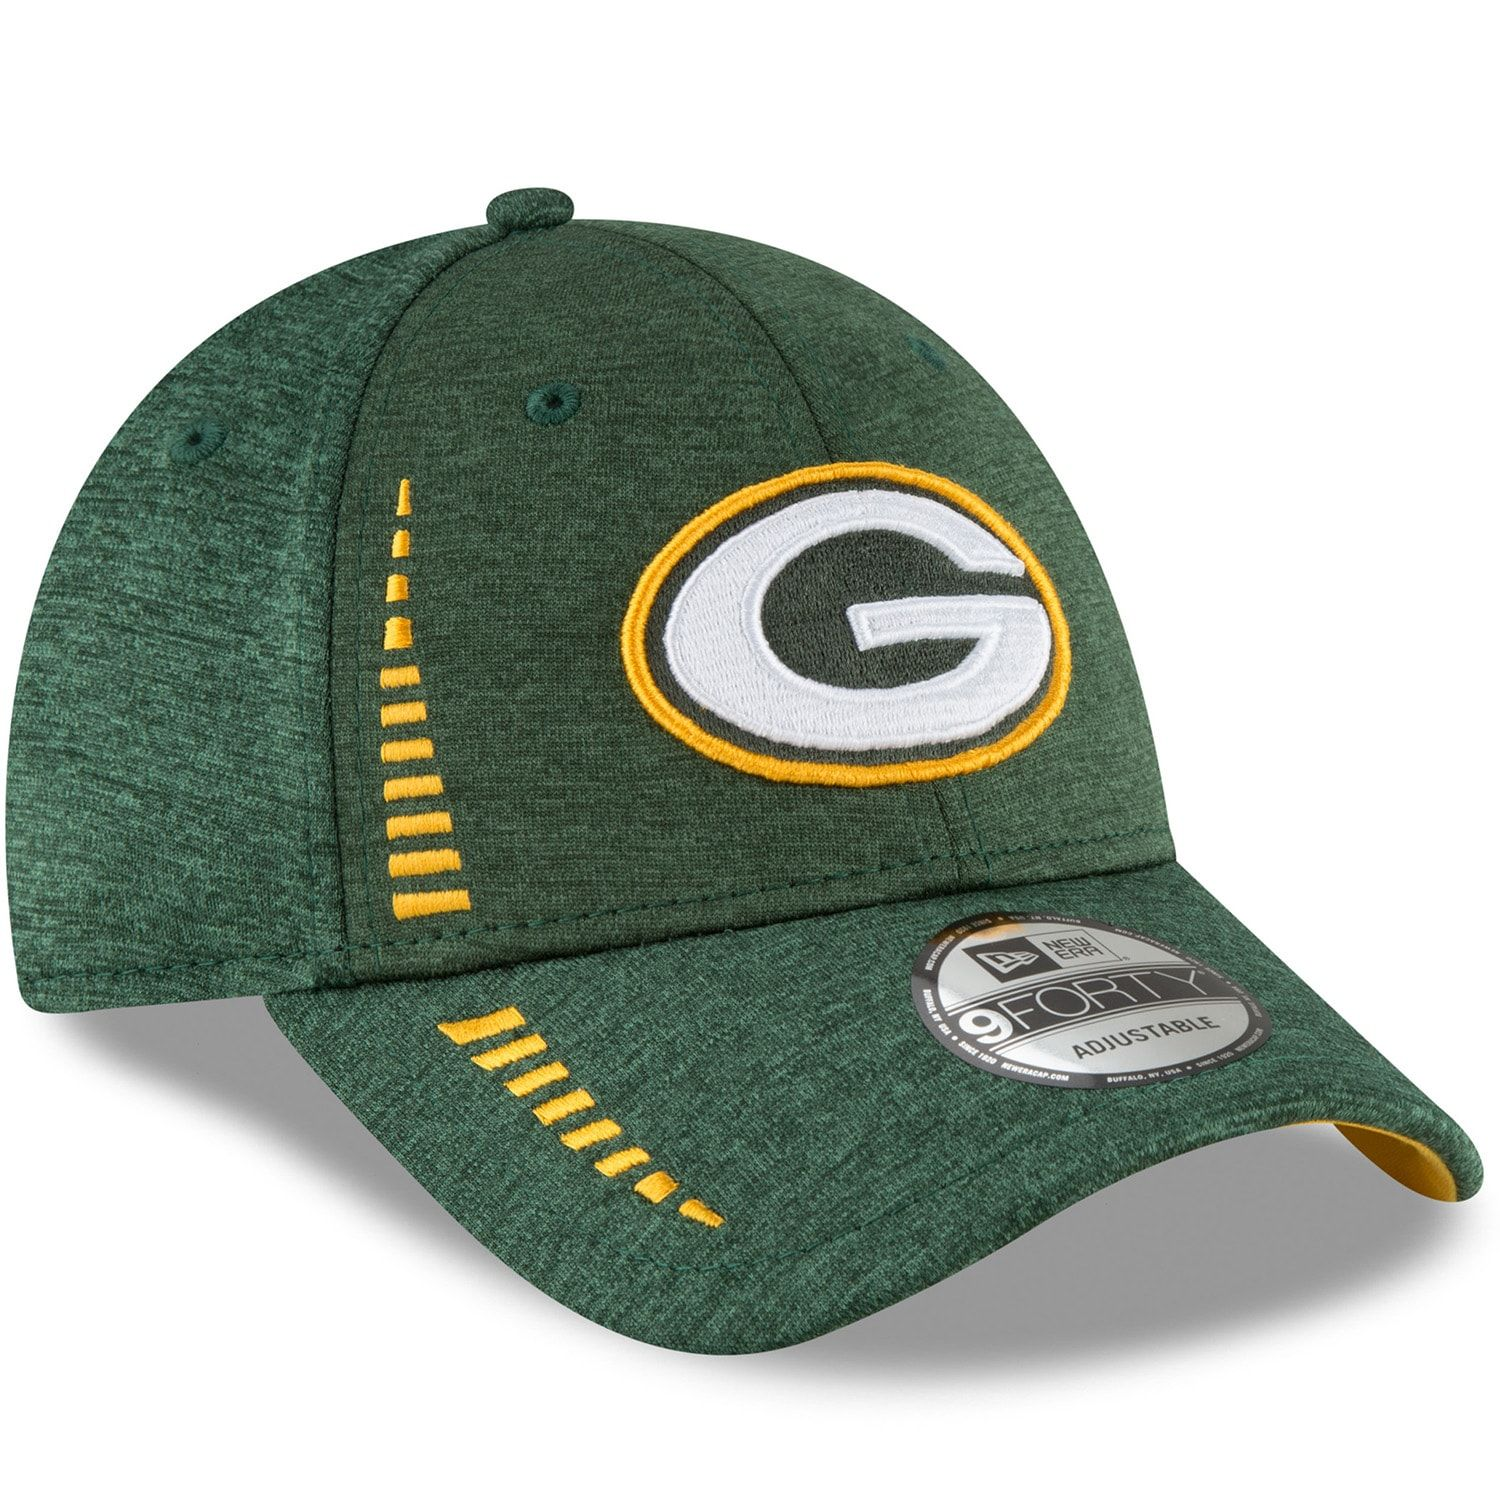 Youth New Era Green Bay Packers Speed 9forty Adjustable Cap Green Bay Youth Era Adjustable Cap Cap New Era